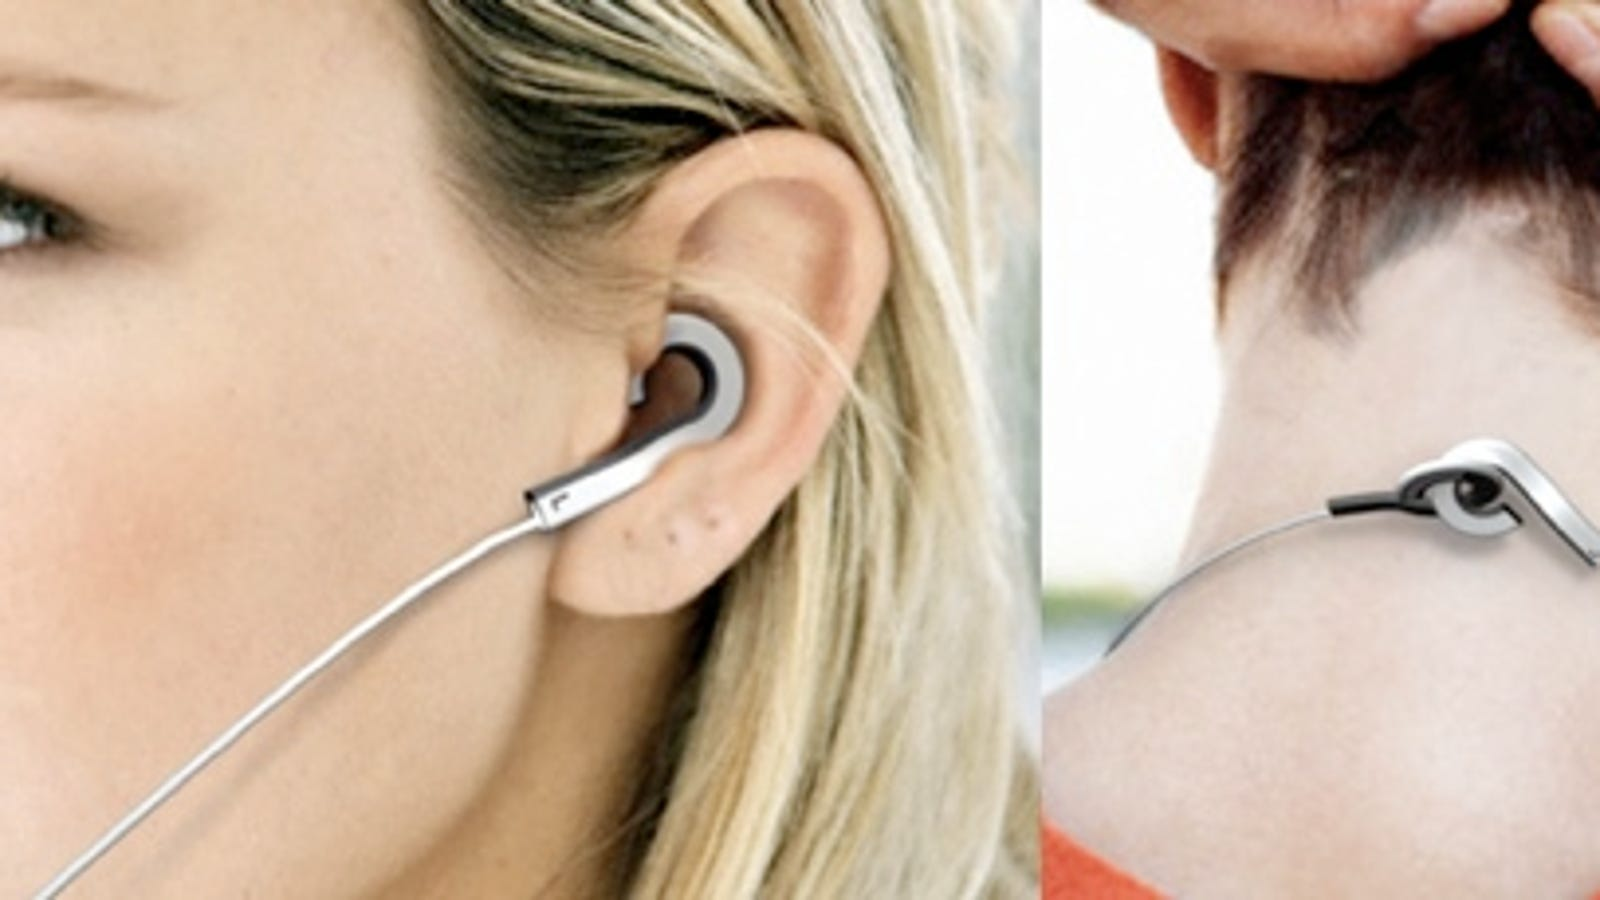 over ear earbuds for iphone - Holeder Earphones Concept Avoids Bacteria By Hanging in Your Ear